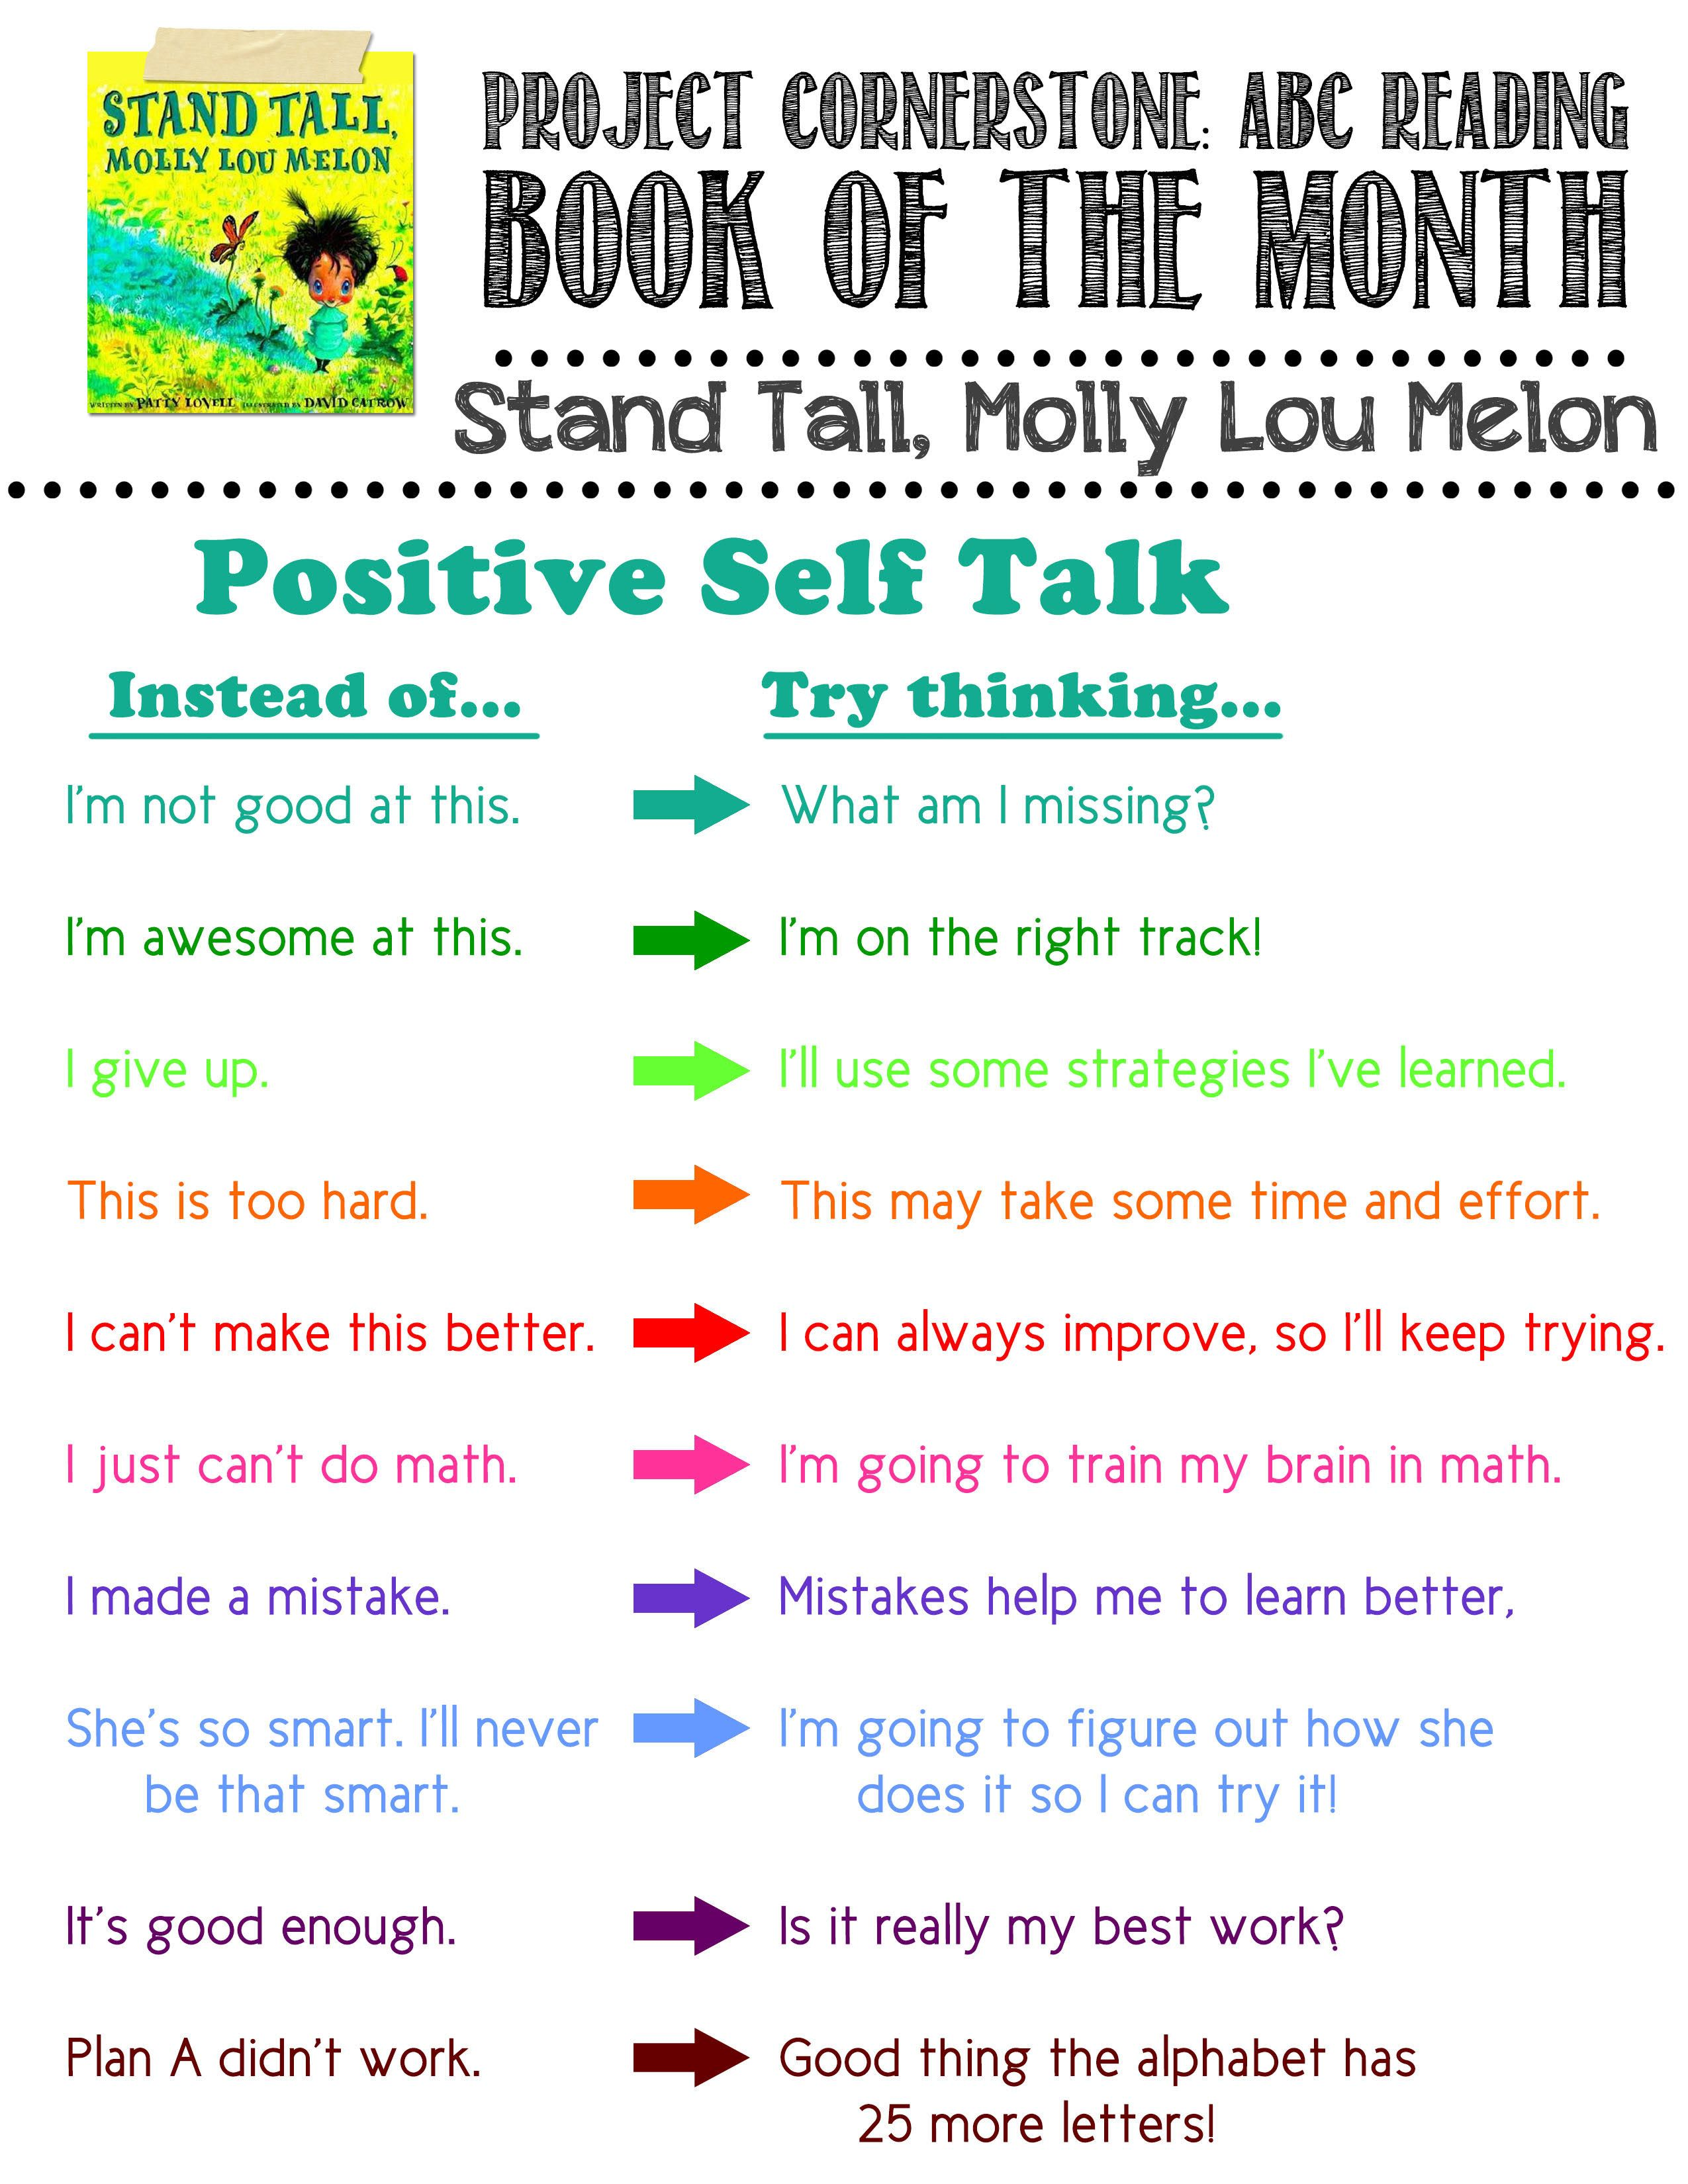 positve self talk flyer to go with stand tall molly lou melon